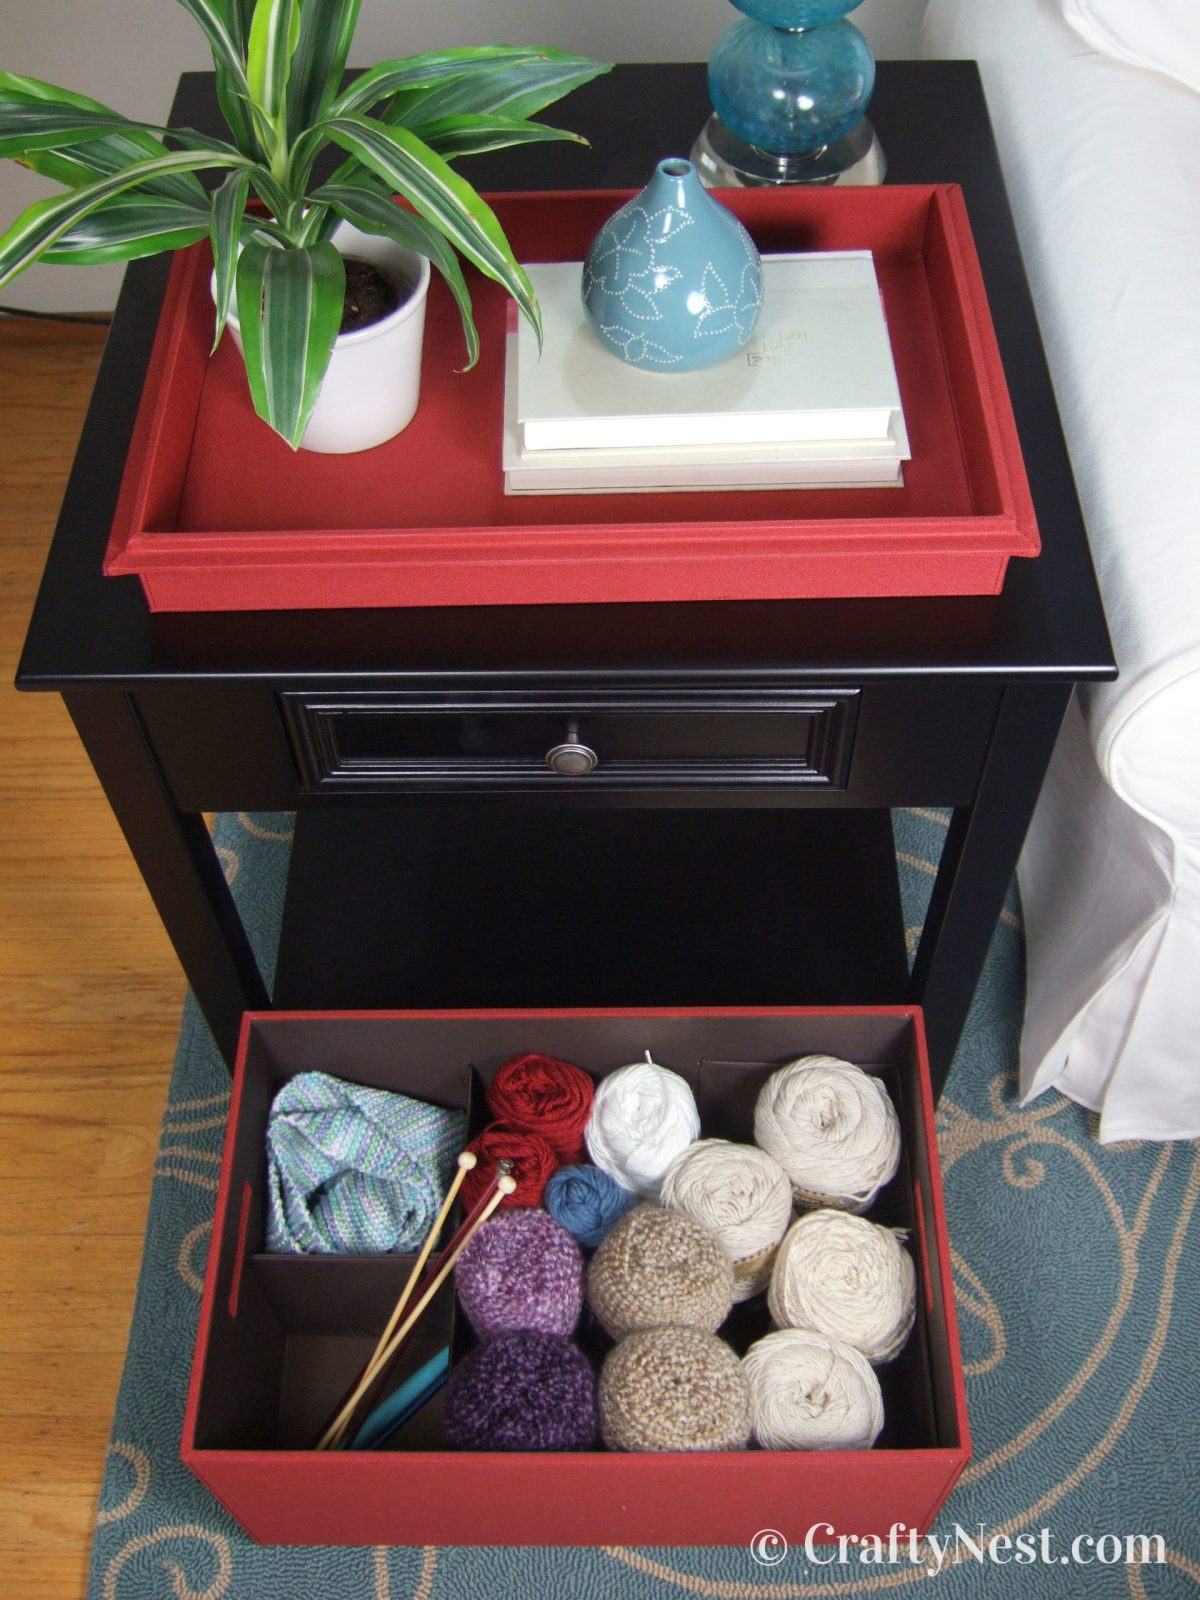 Open Bento Box and tray with knitting supplies, photo